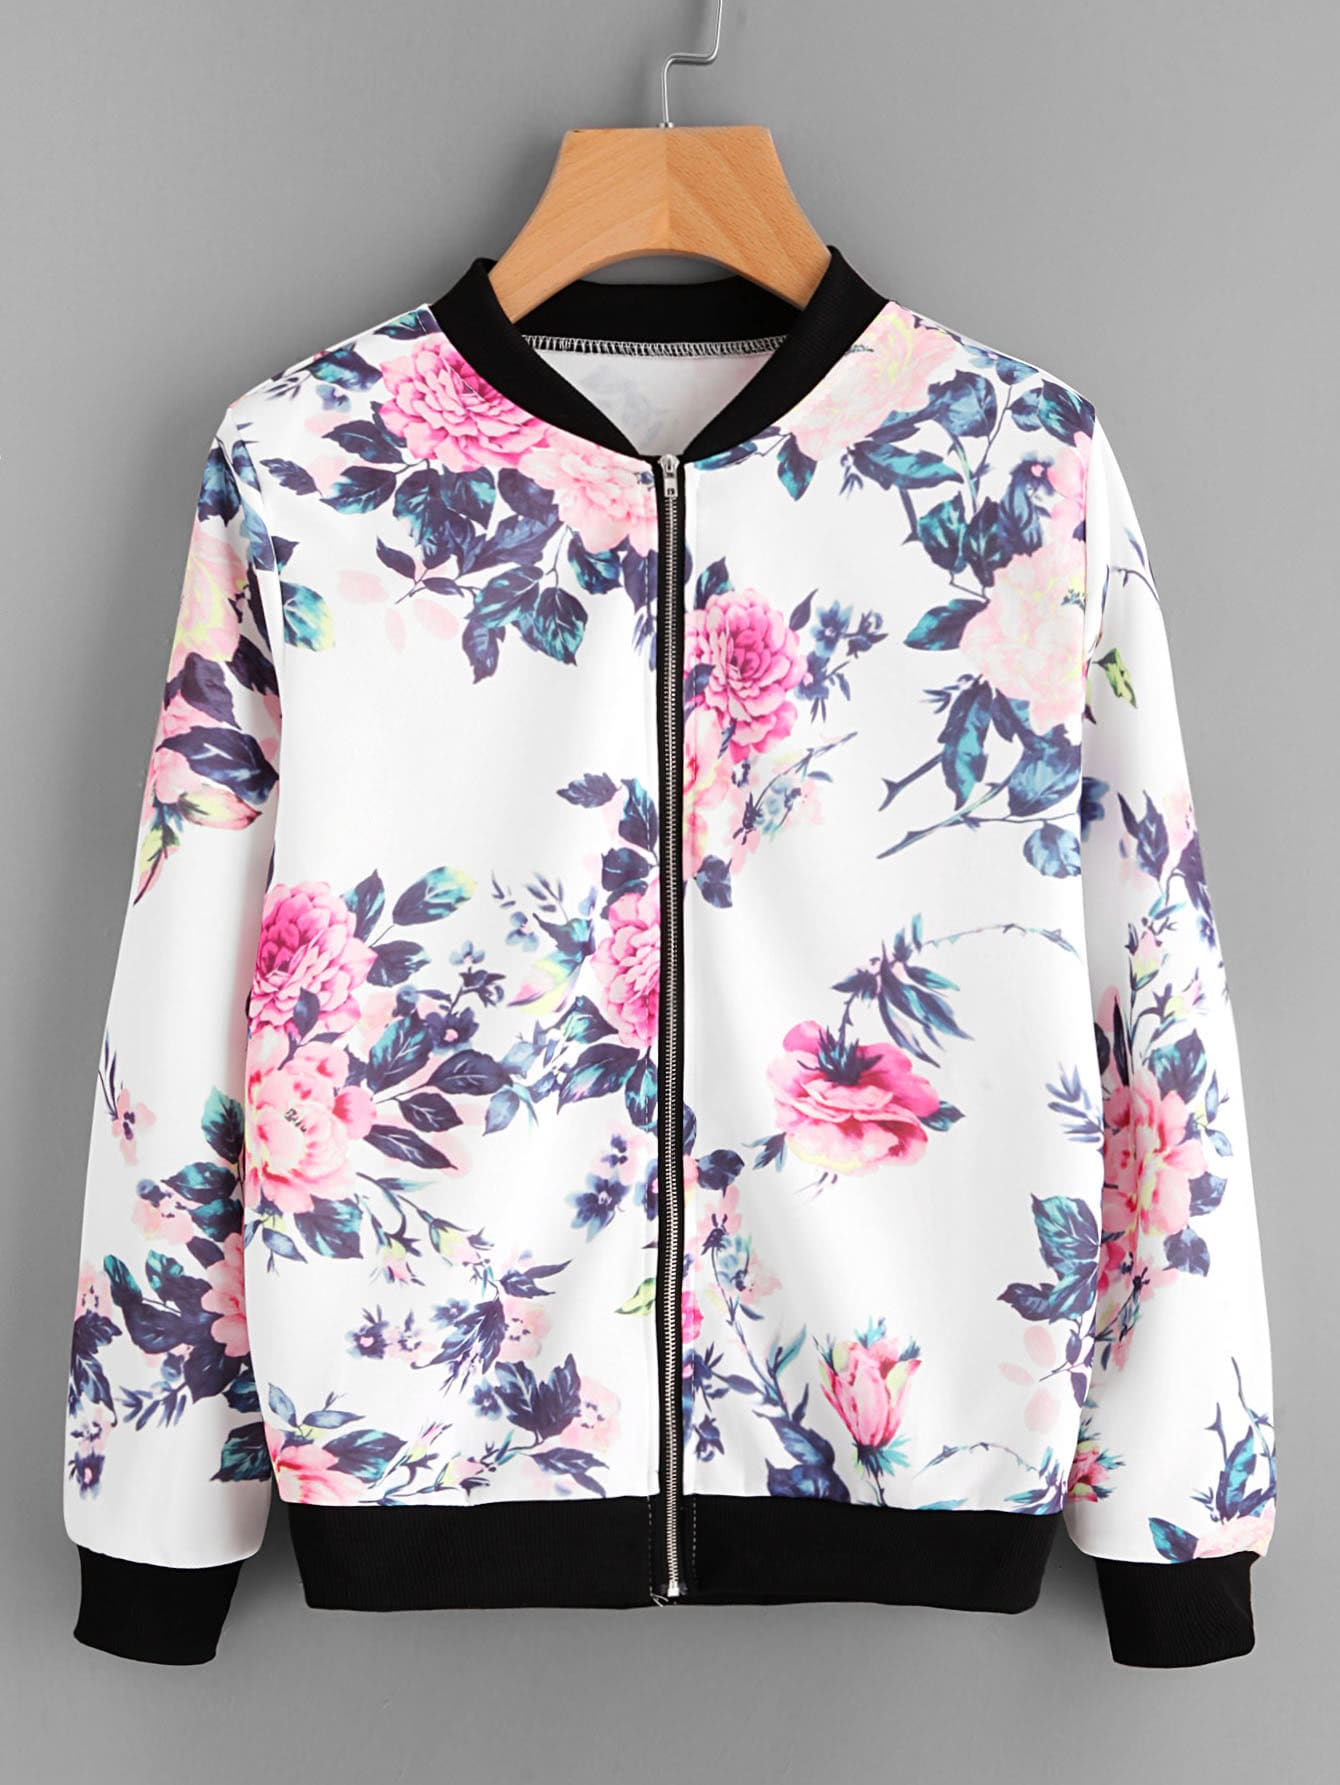 Floral Print Contrast Trim Zip Up Jacket leopard floral print zip up jacket